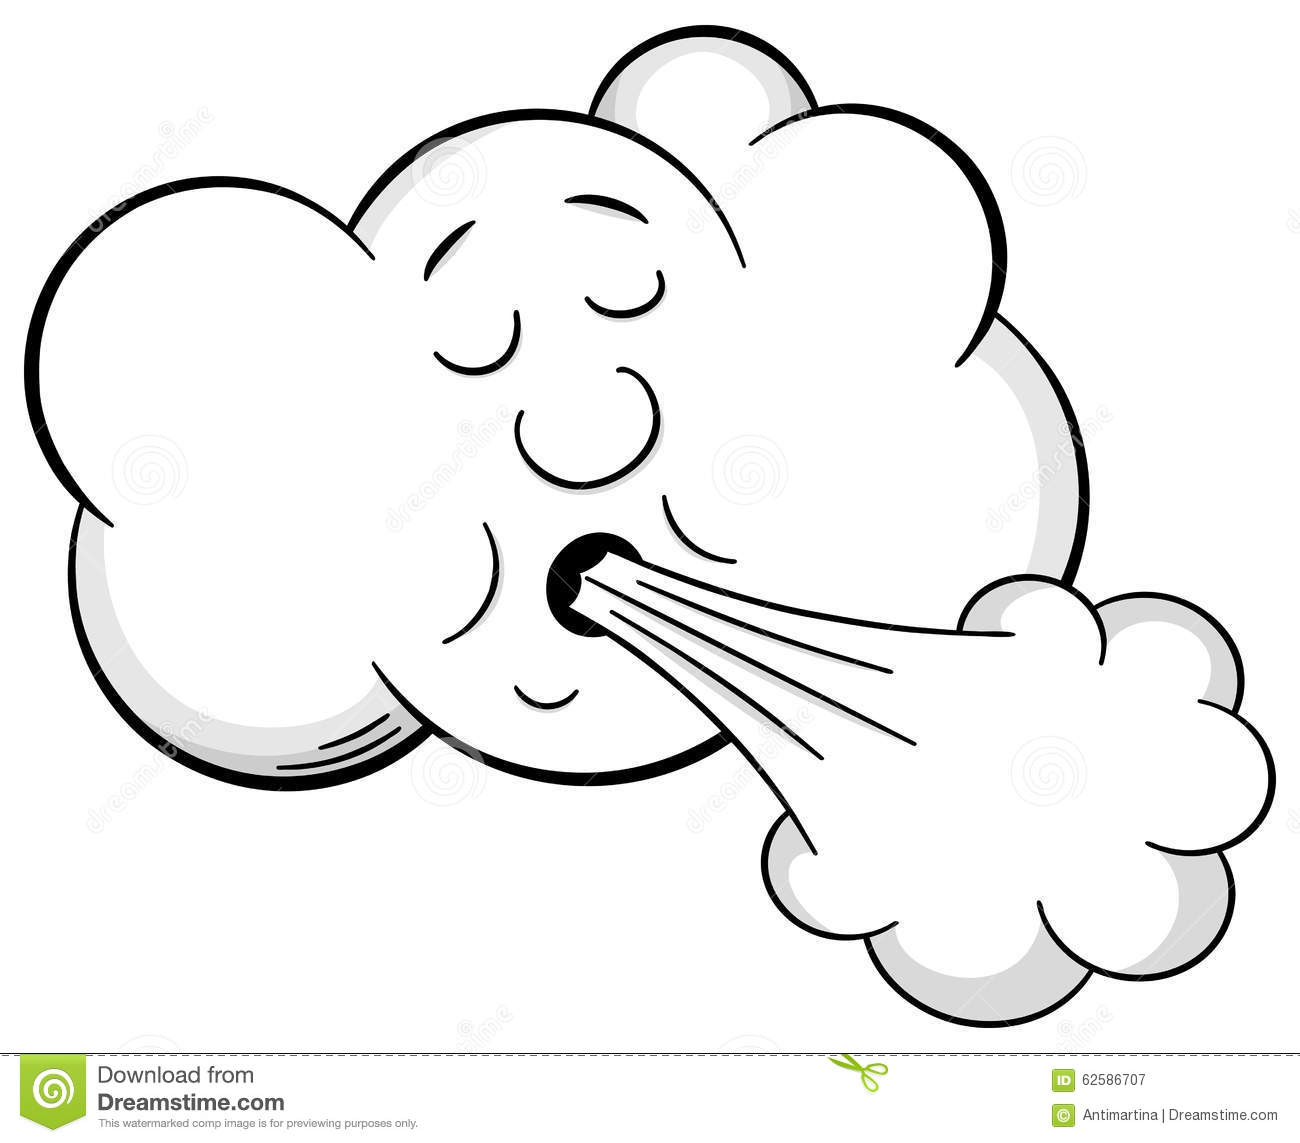 Clipart Cloud Thin Border as well Royalty Free Stock Photos Copyright Words Image10975578 likewise Stock Photography Technology Doodles Vector Hand Drawn Image34200012 further X25 together with Symantec Content Analysis System Central  ponent Atp System. on cloud architecture